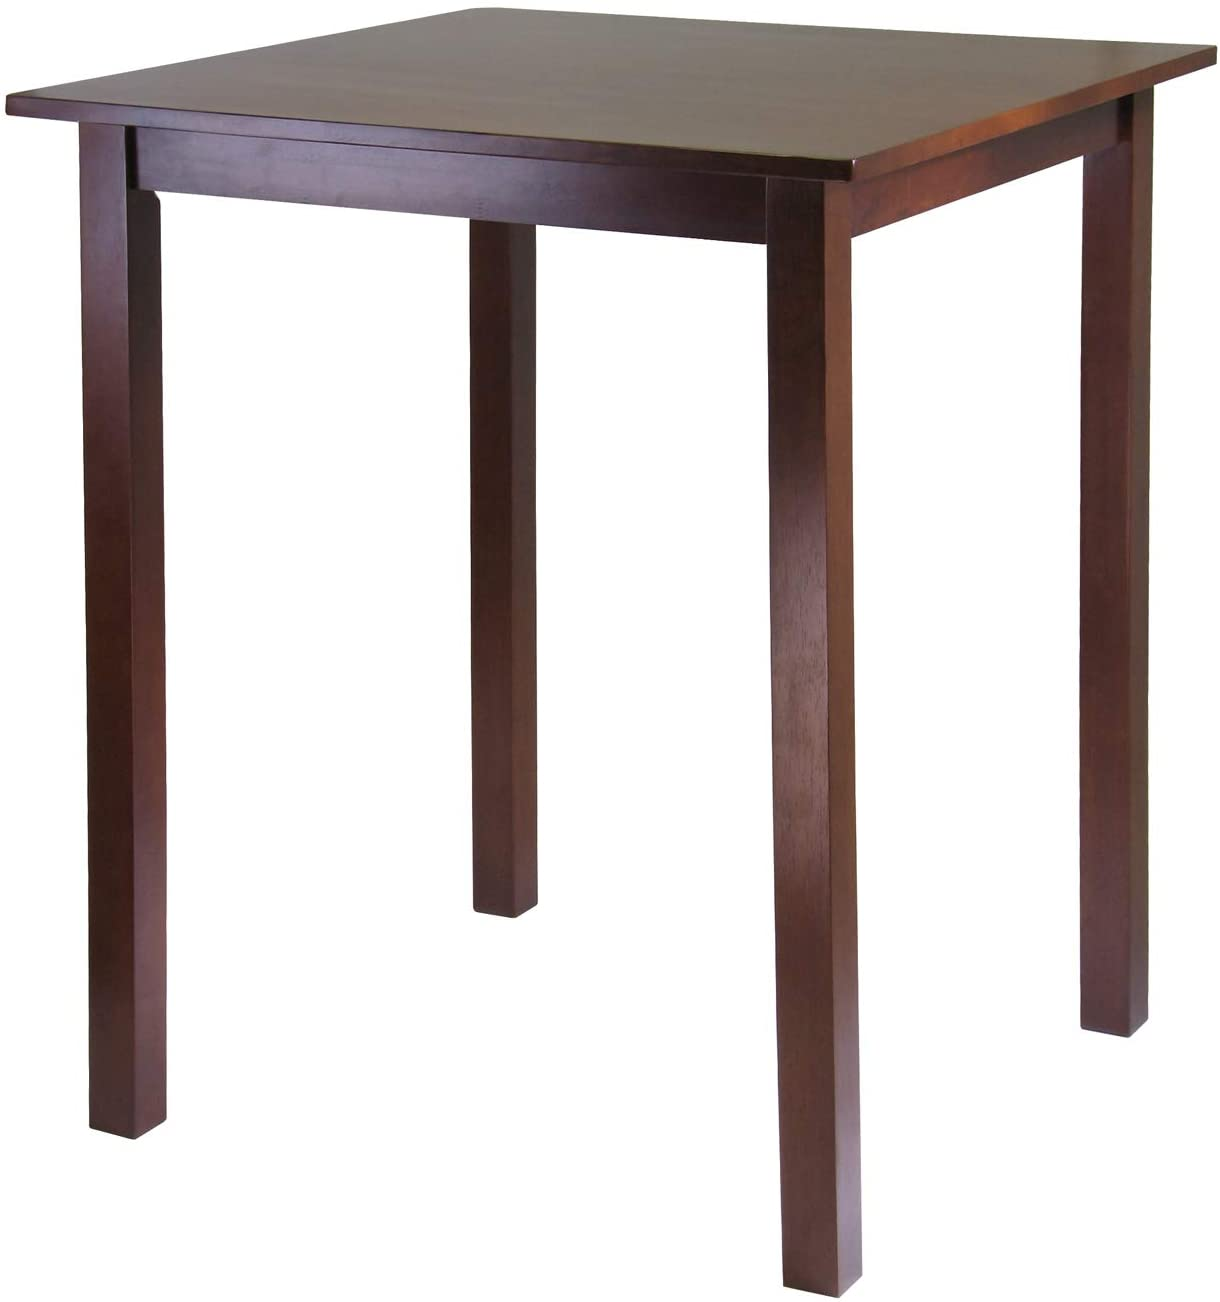 Winsome Ranking TOP2 Max 44% OFF Wood Parkland Walnut Dining